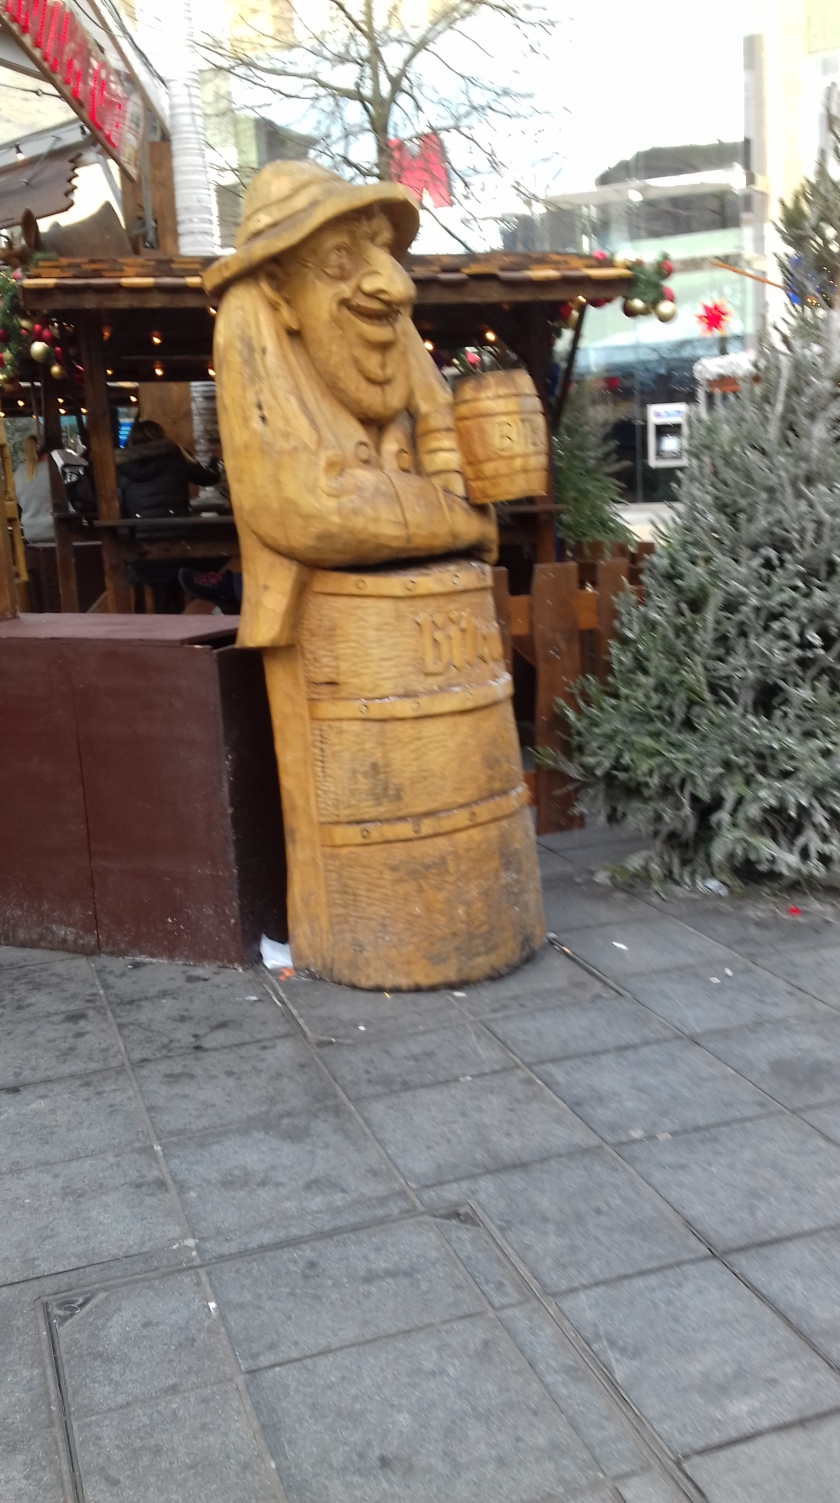 Life size Wooden figure in the German market Broadmead Bristol #Bristmas